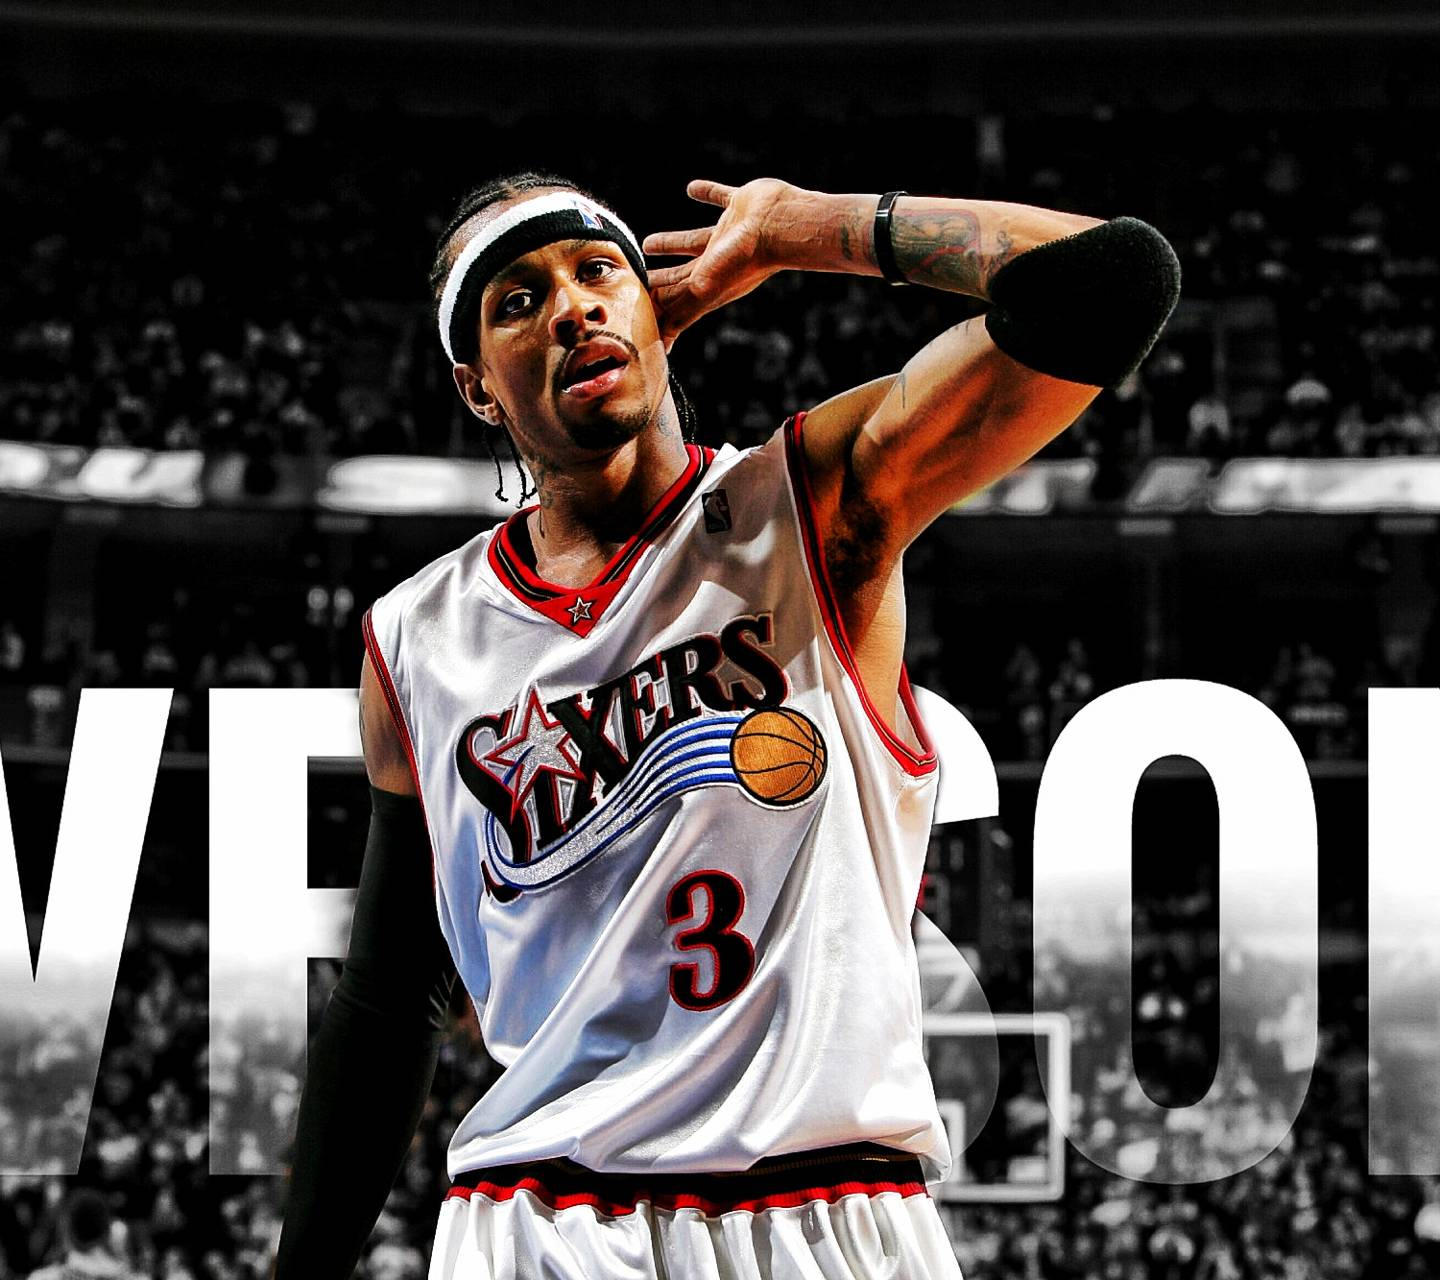 Allen Iverson Wallpapers Top Free Allen Iverson Backgrounds Wallpaperaccess